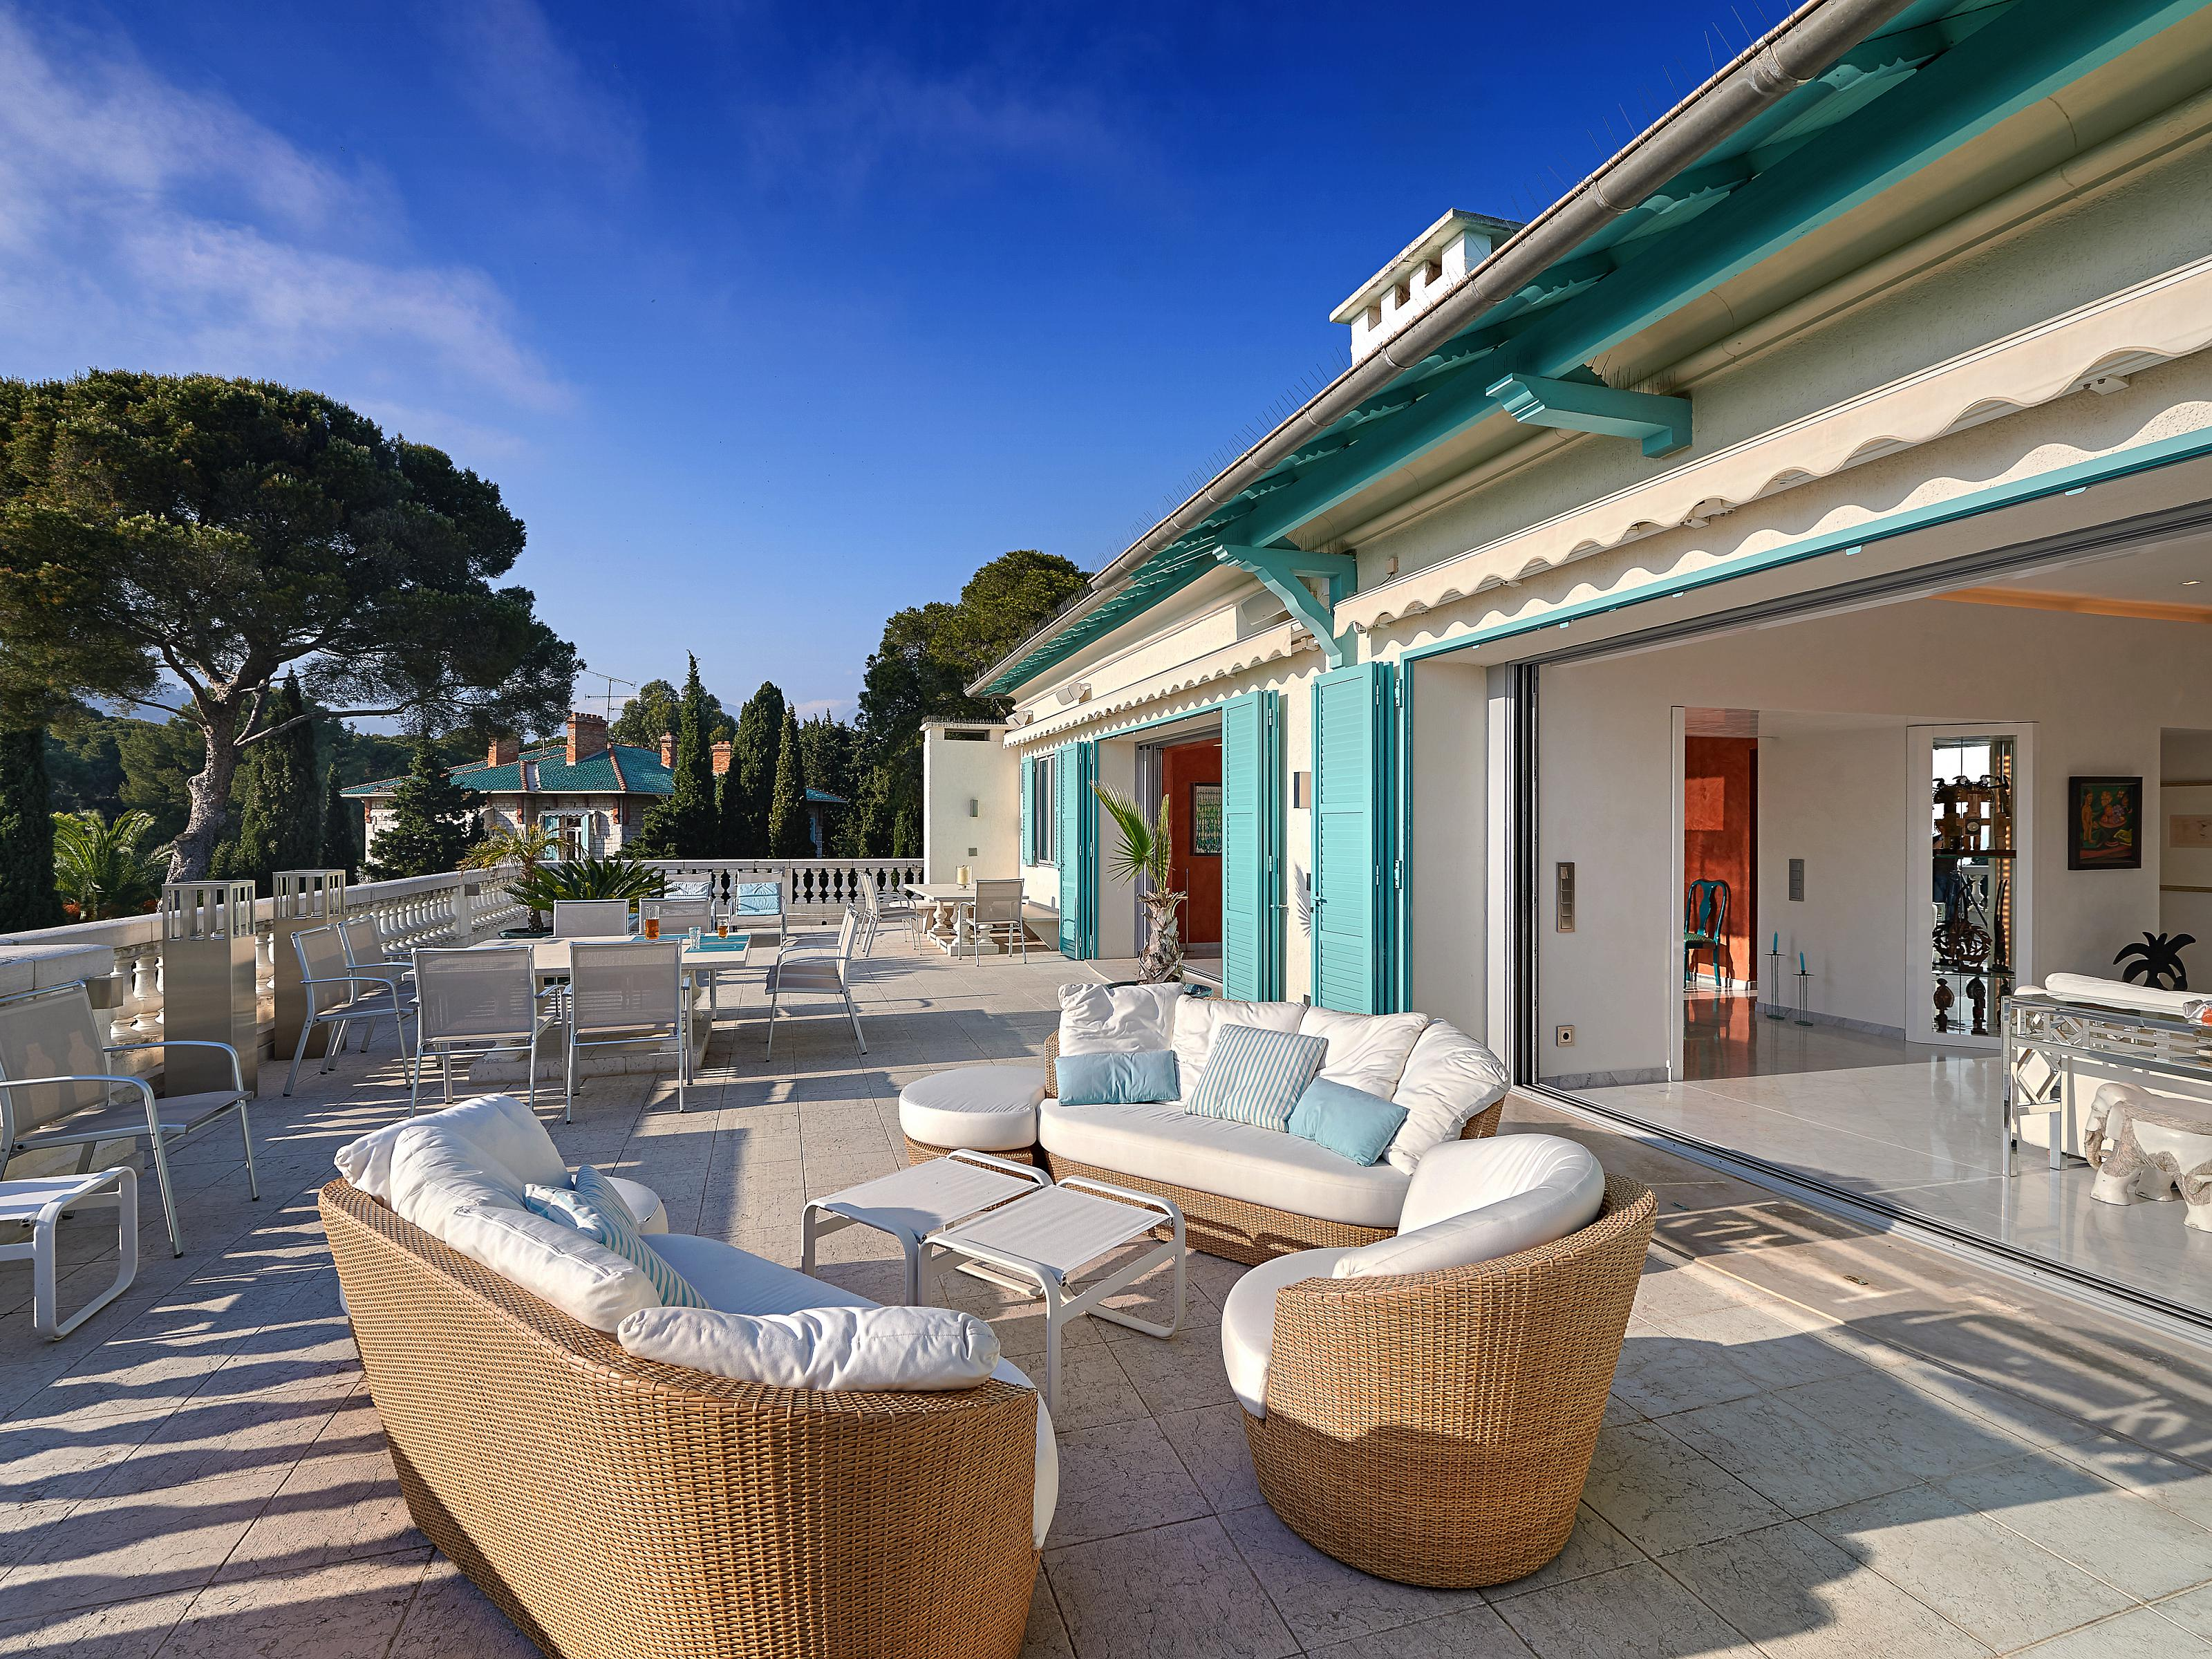 Apartment for Sale at Cap Martin, 2 luxury apartments for sale in a Belle Epoque mansion Roquebrune Cap Martin Roquebrune Cap Martin, Provence-Alpes-Cote D'Azur 06190 France